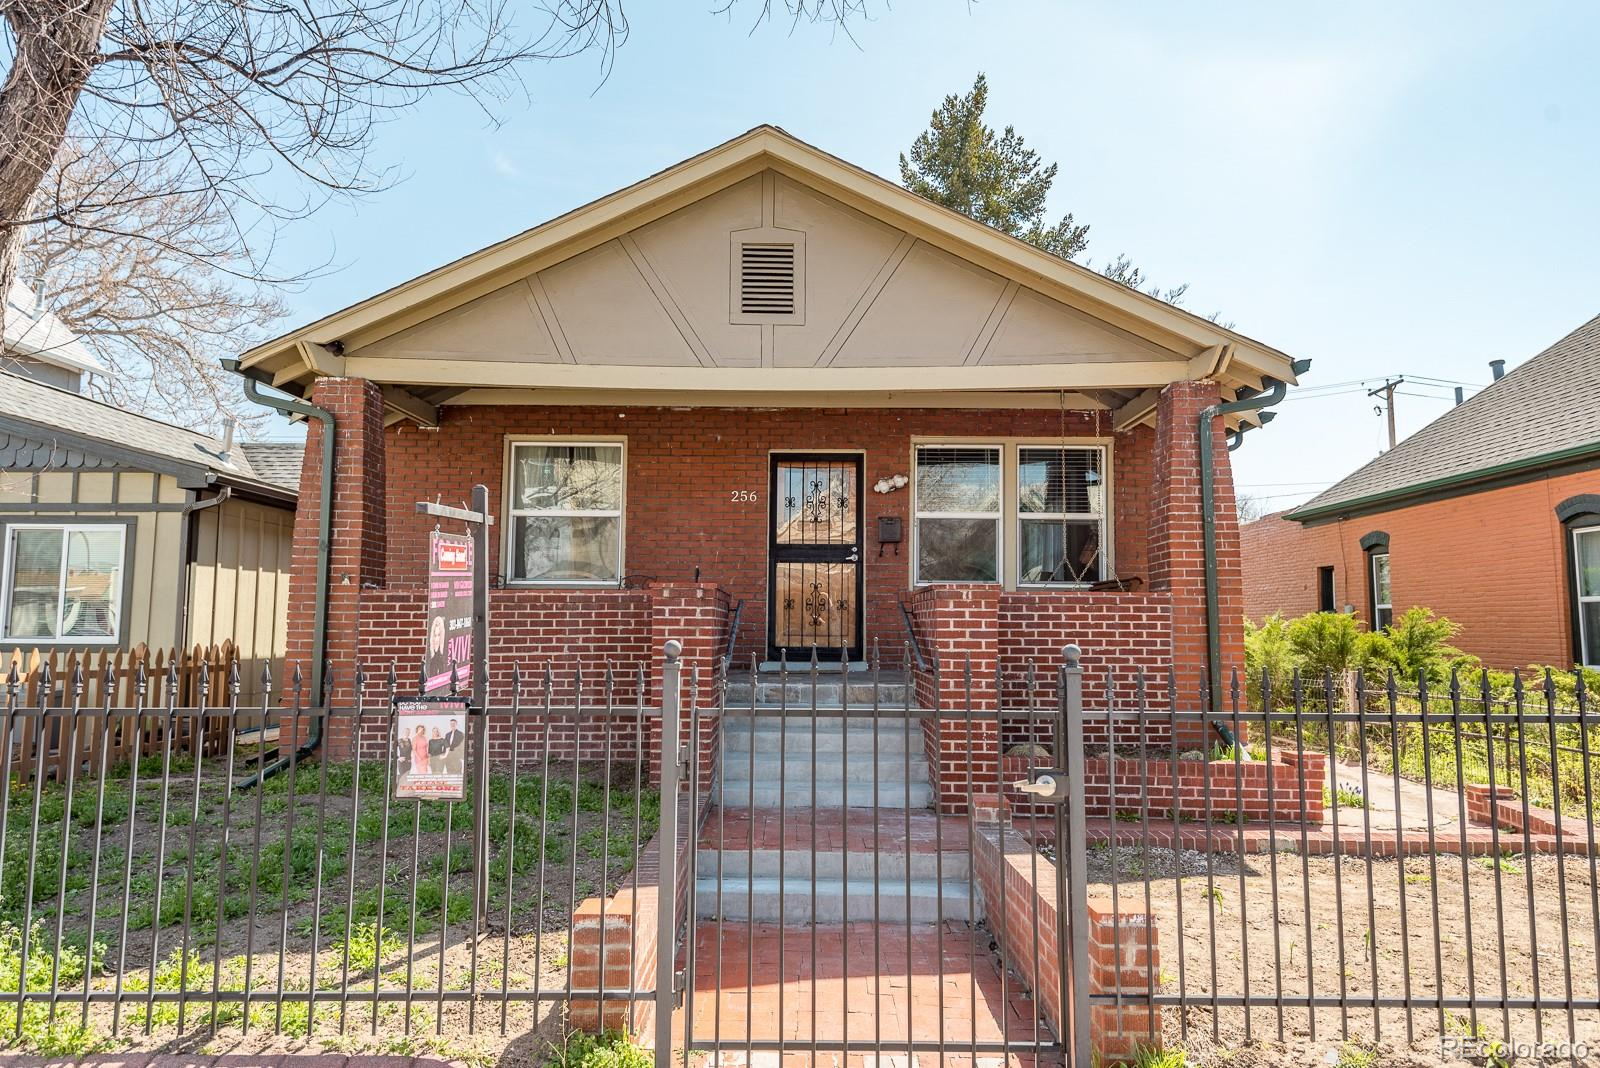 MLS# 8413392 - 1 - 256 Galapago Street, Denver, CO 80223